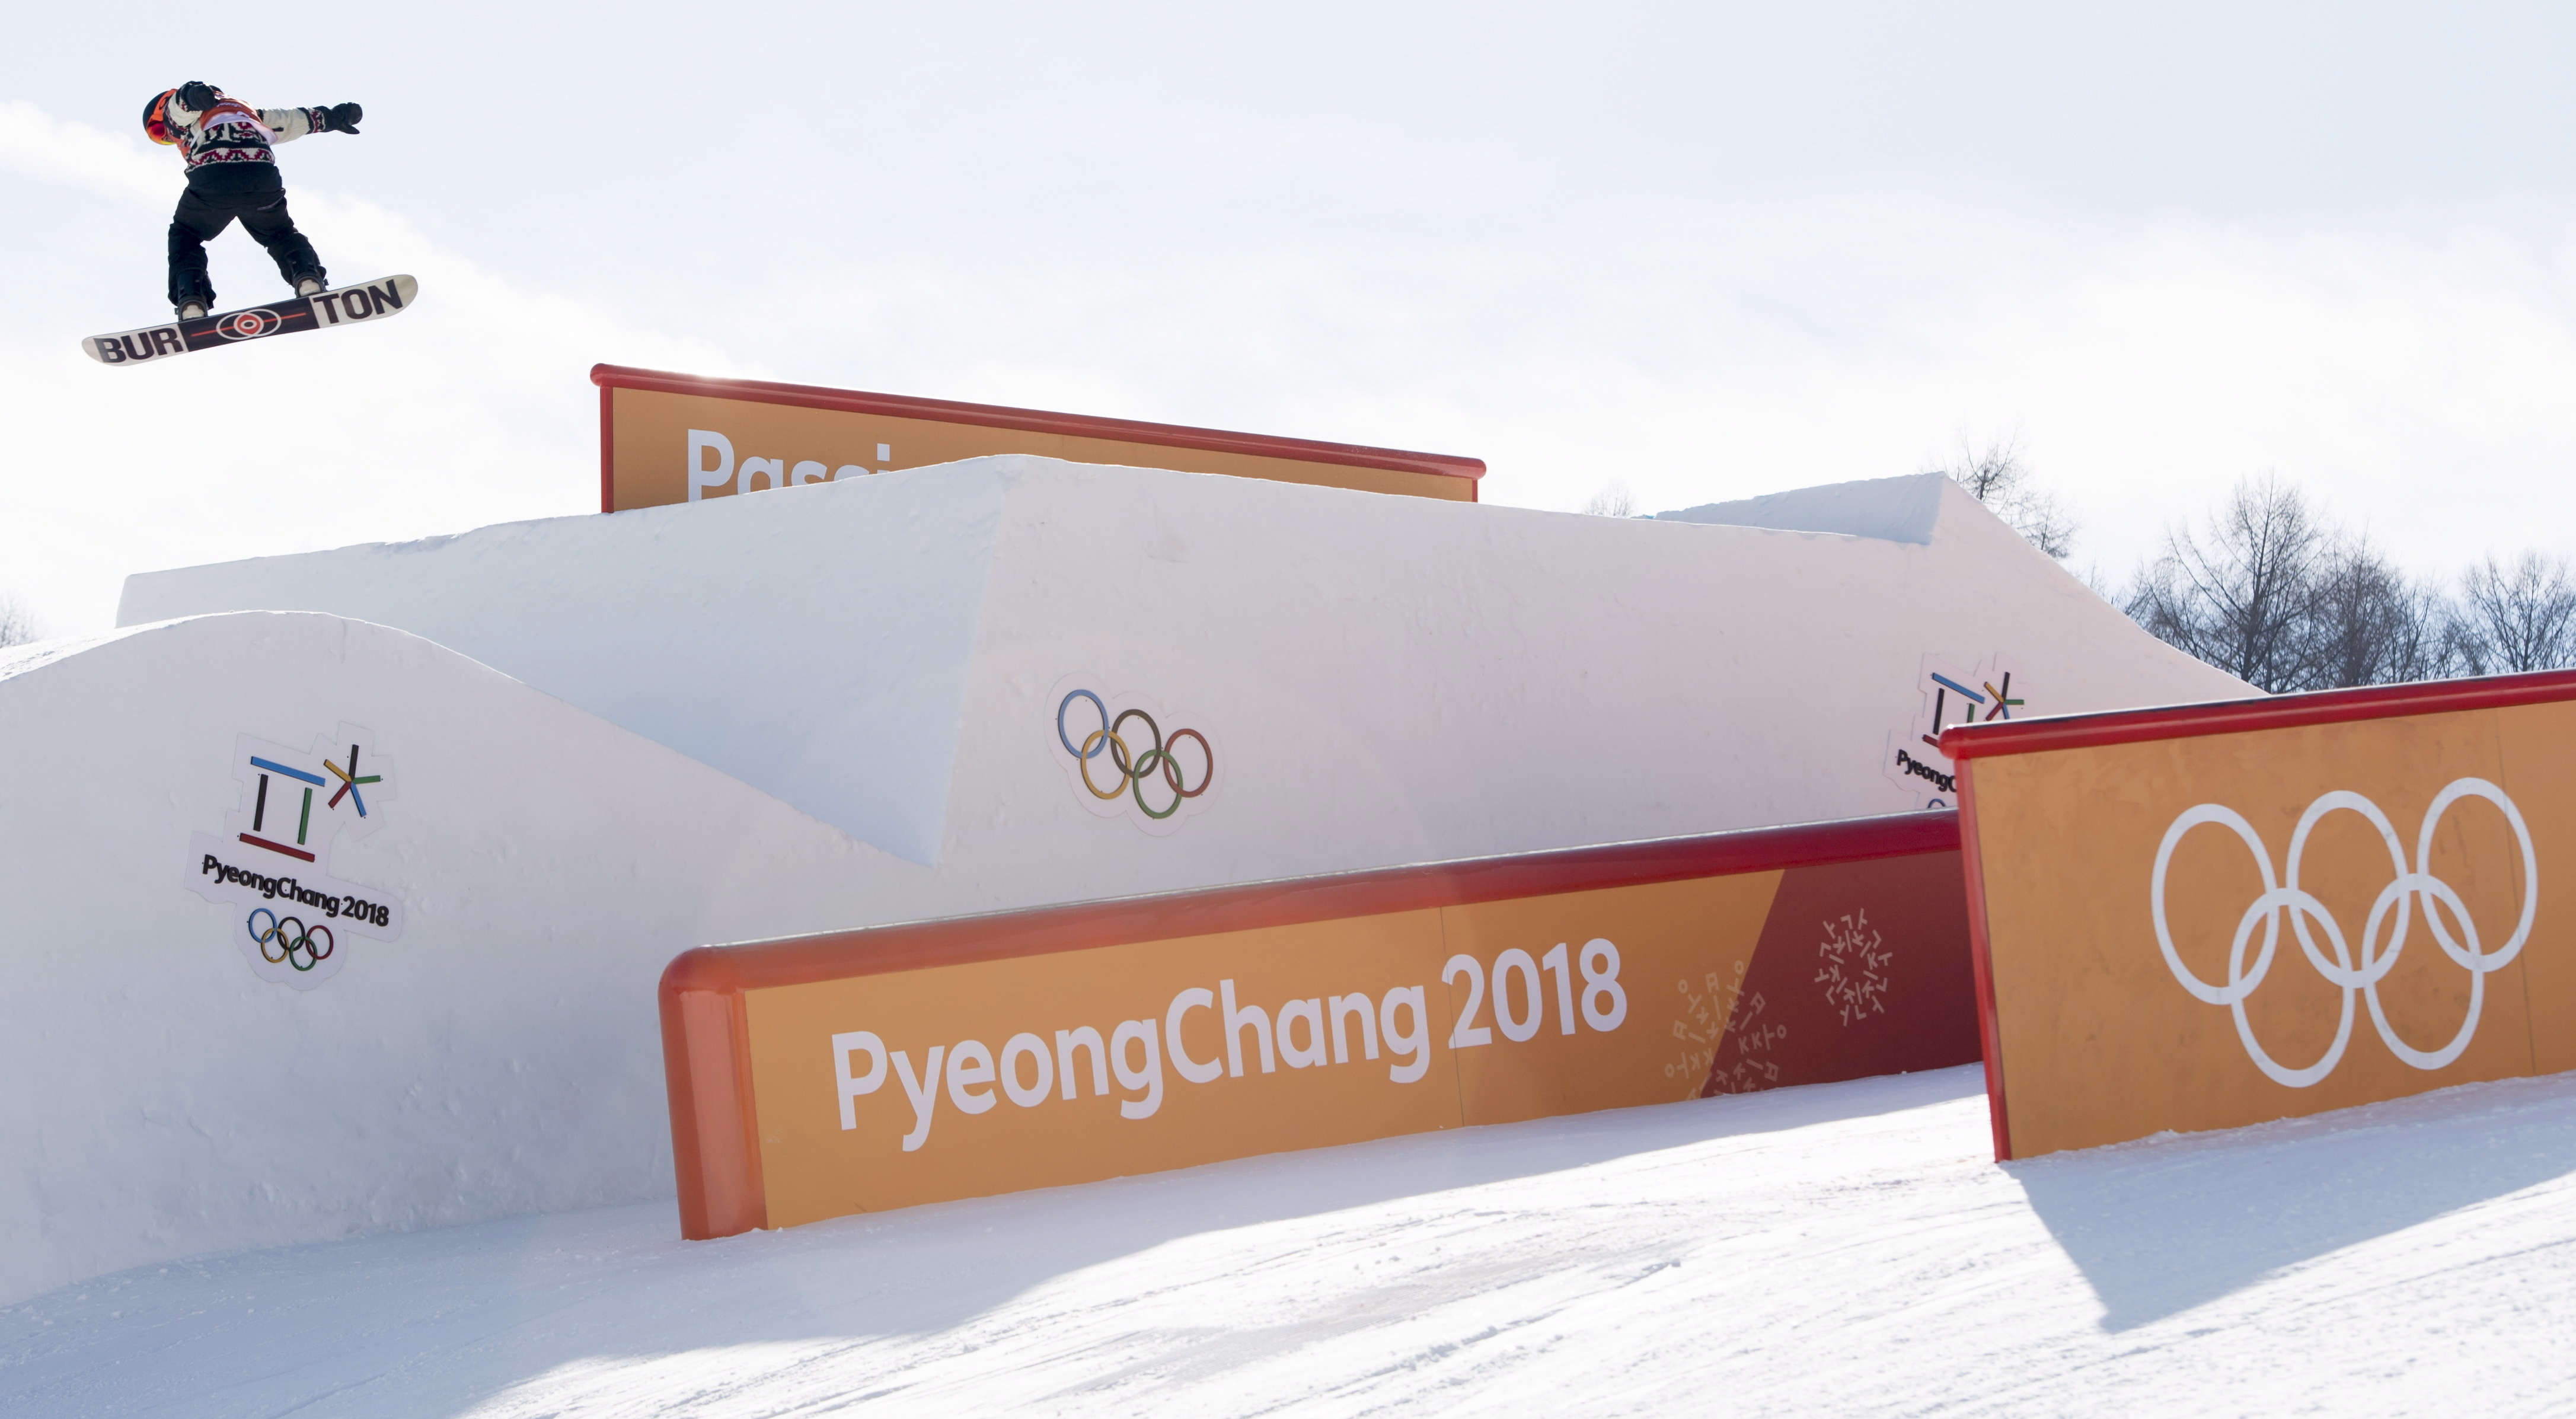 a vermont guide to the pyeongchang winter olympics vermont public radio a vermont guide to the pyeongchang winter olympics vermont public radio